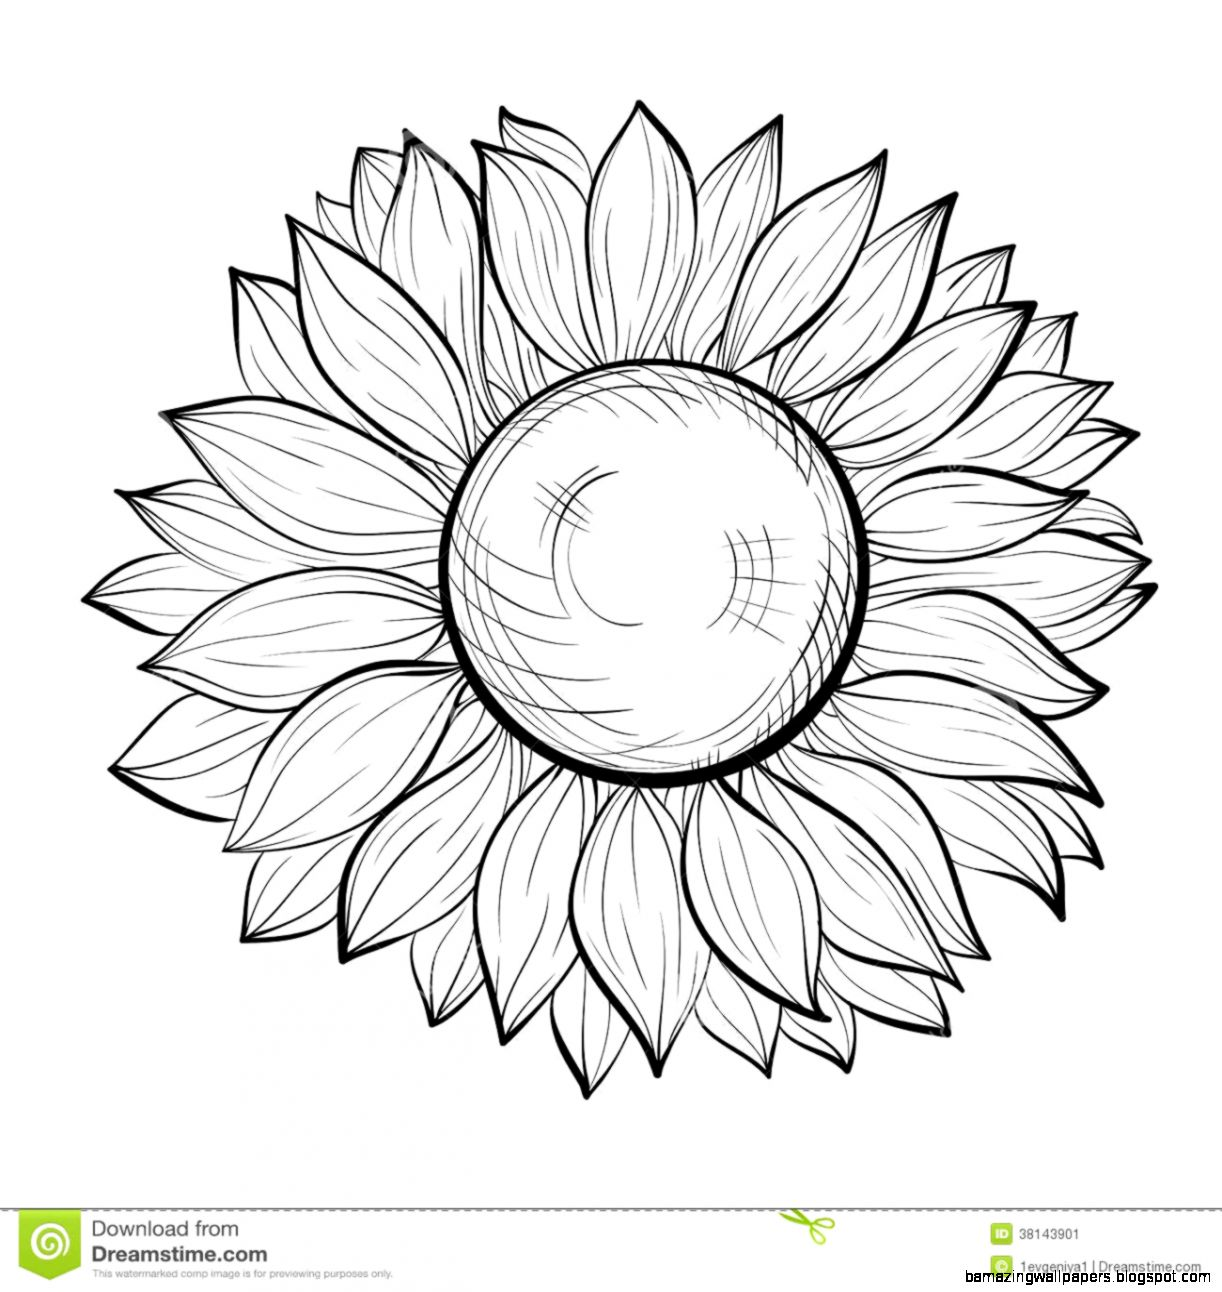 Sunflower Outline Clipart   Clipart Kid